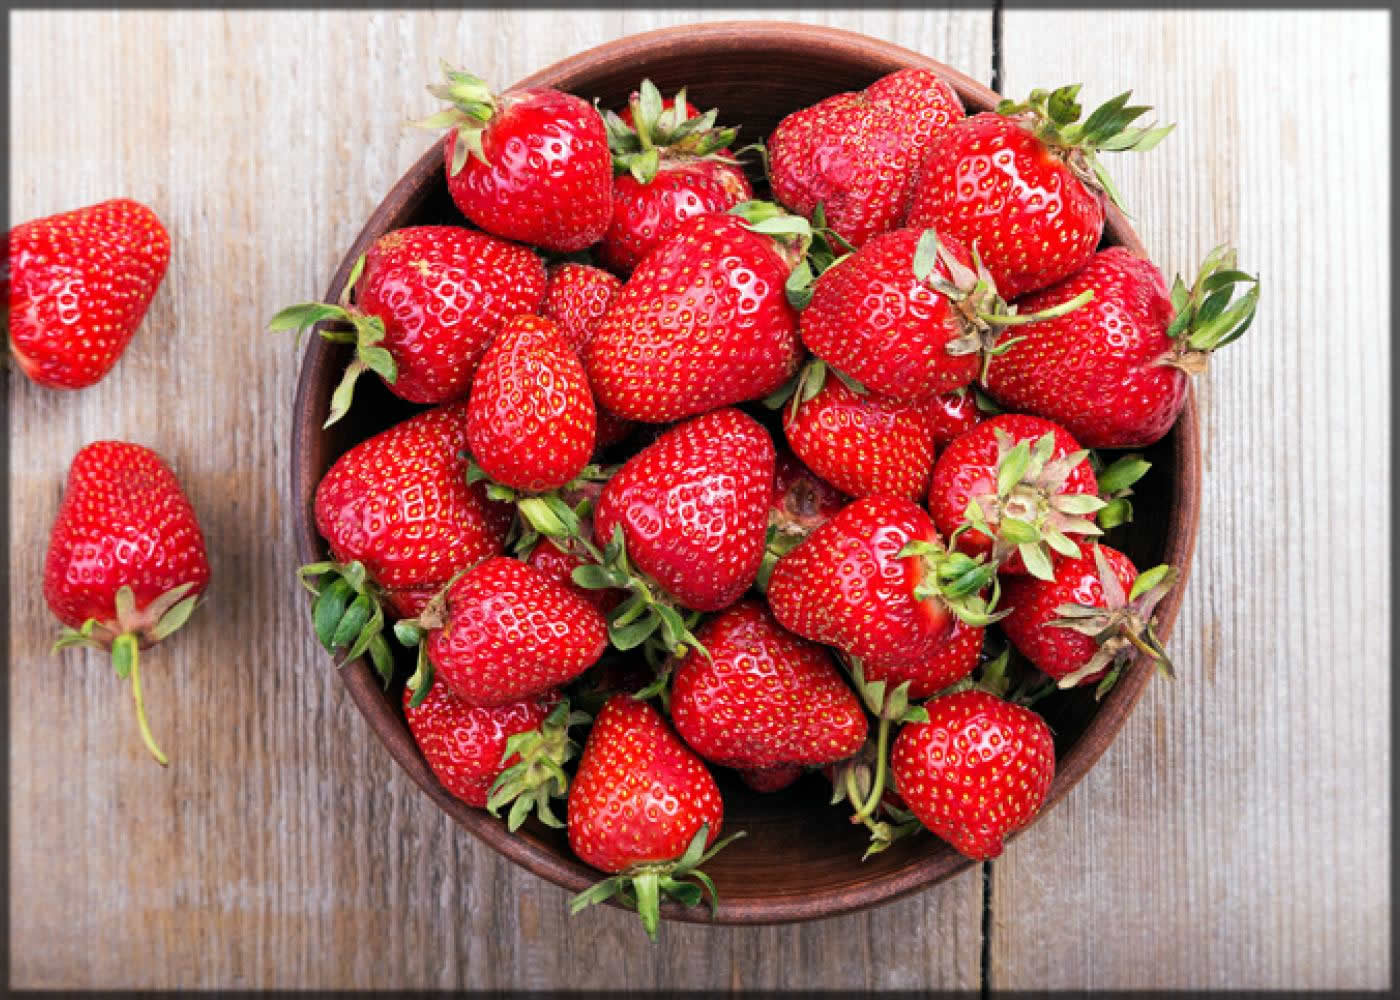 Strawberry reduces the eye bags